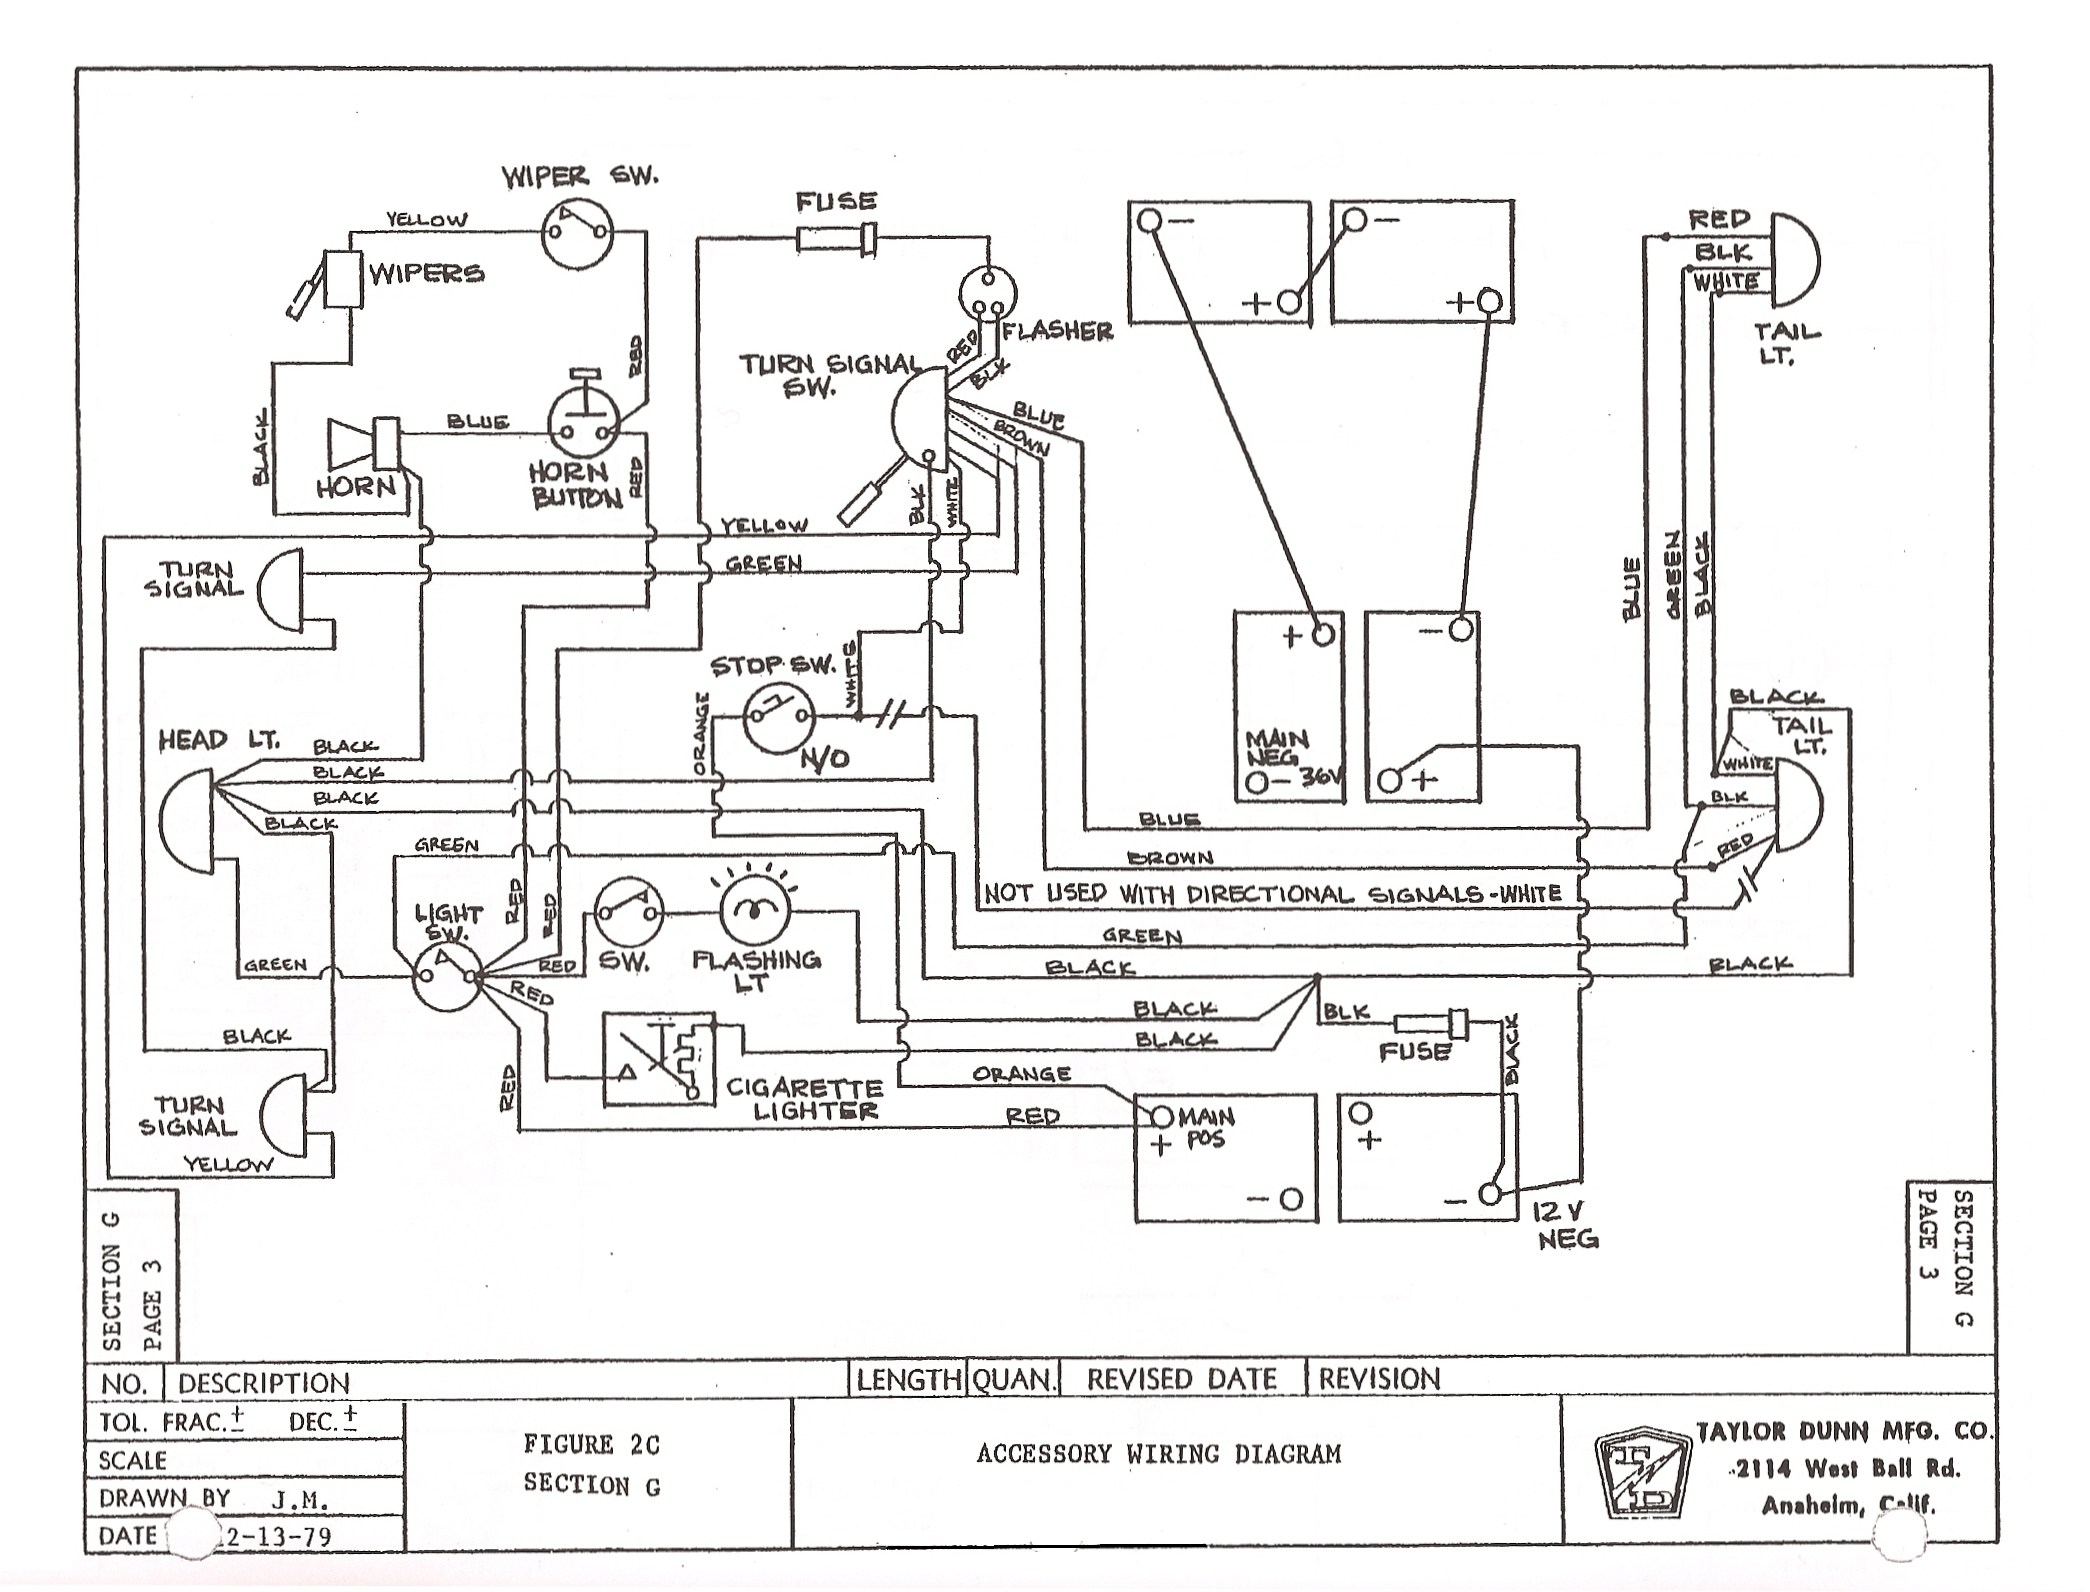 asabs - blog 1996 club car golf cart wiring diagram 36 volts golf cart wiring diagram 36 volt 4 speed #13